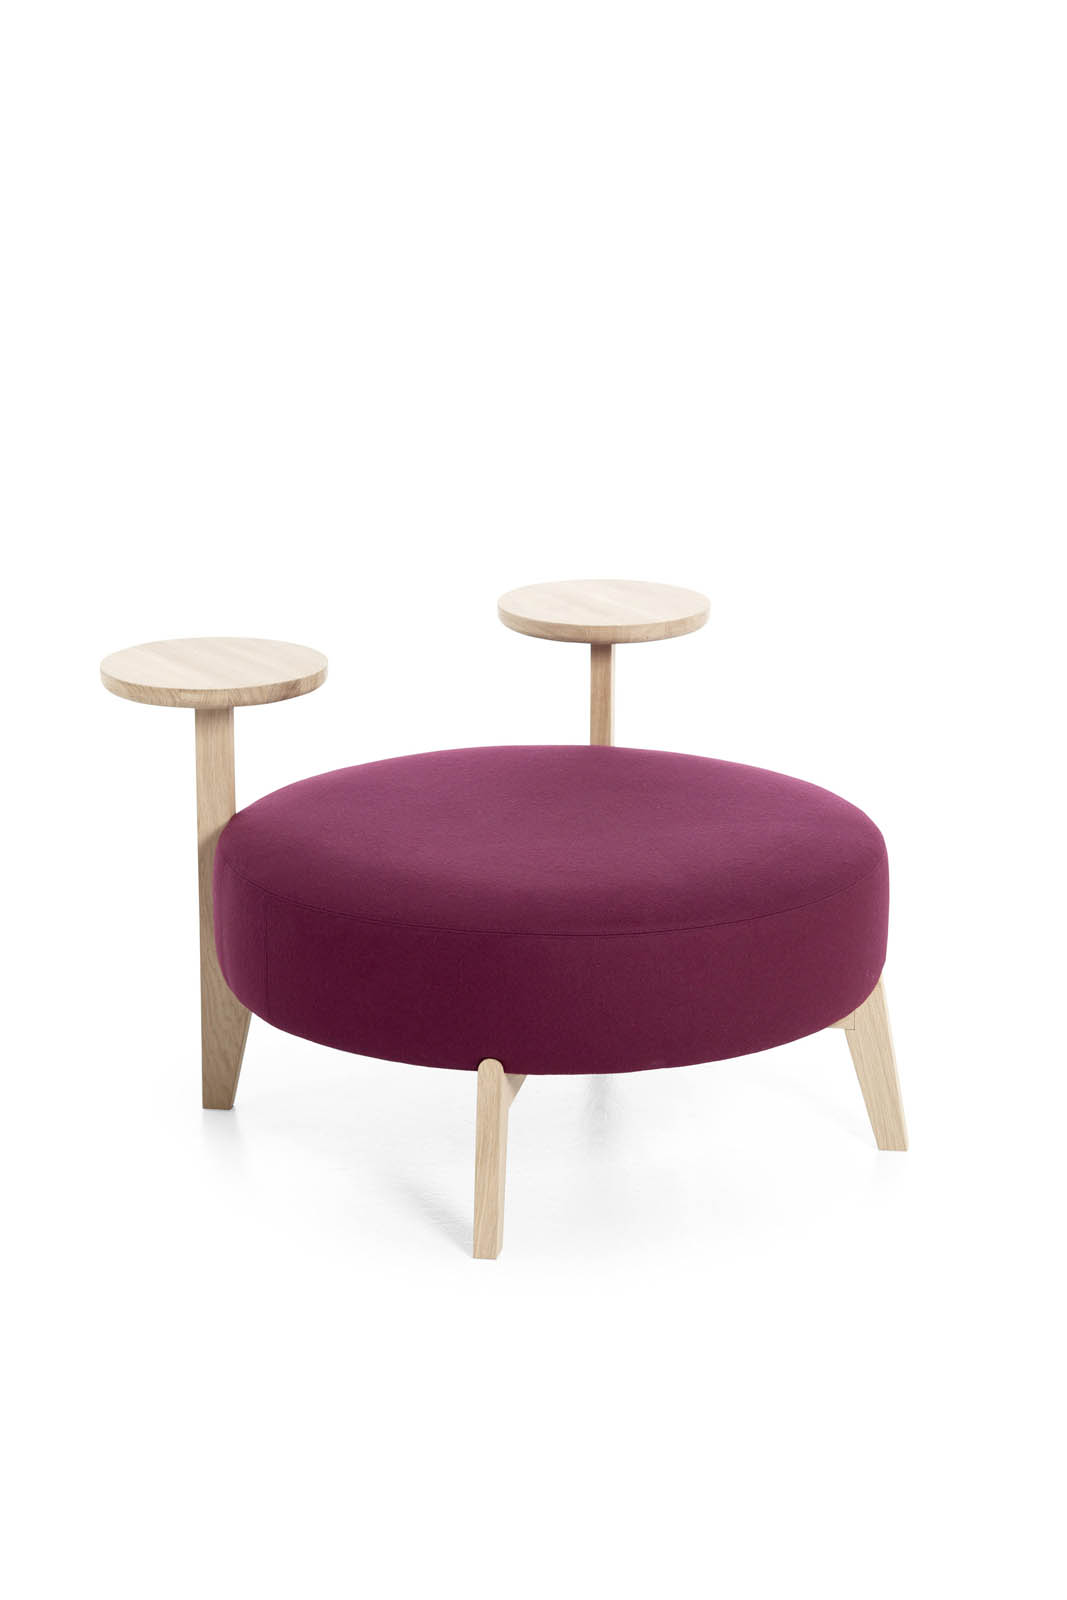 Misure Pouf.Pouf 90 Tr Isola Very Wood Italian Chair Makers